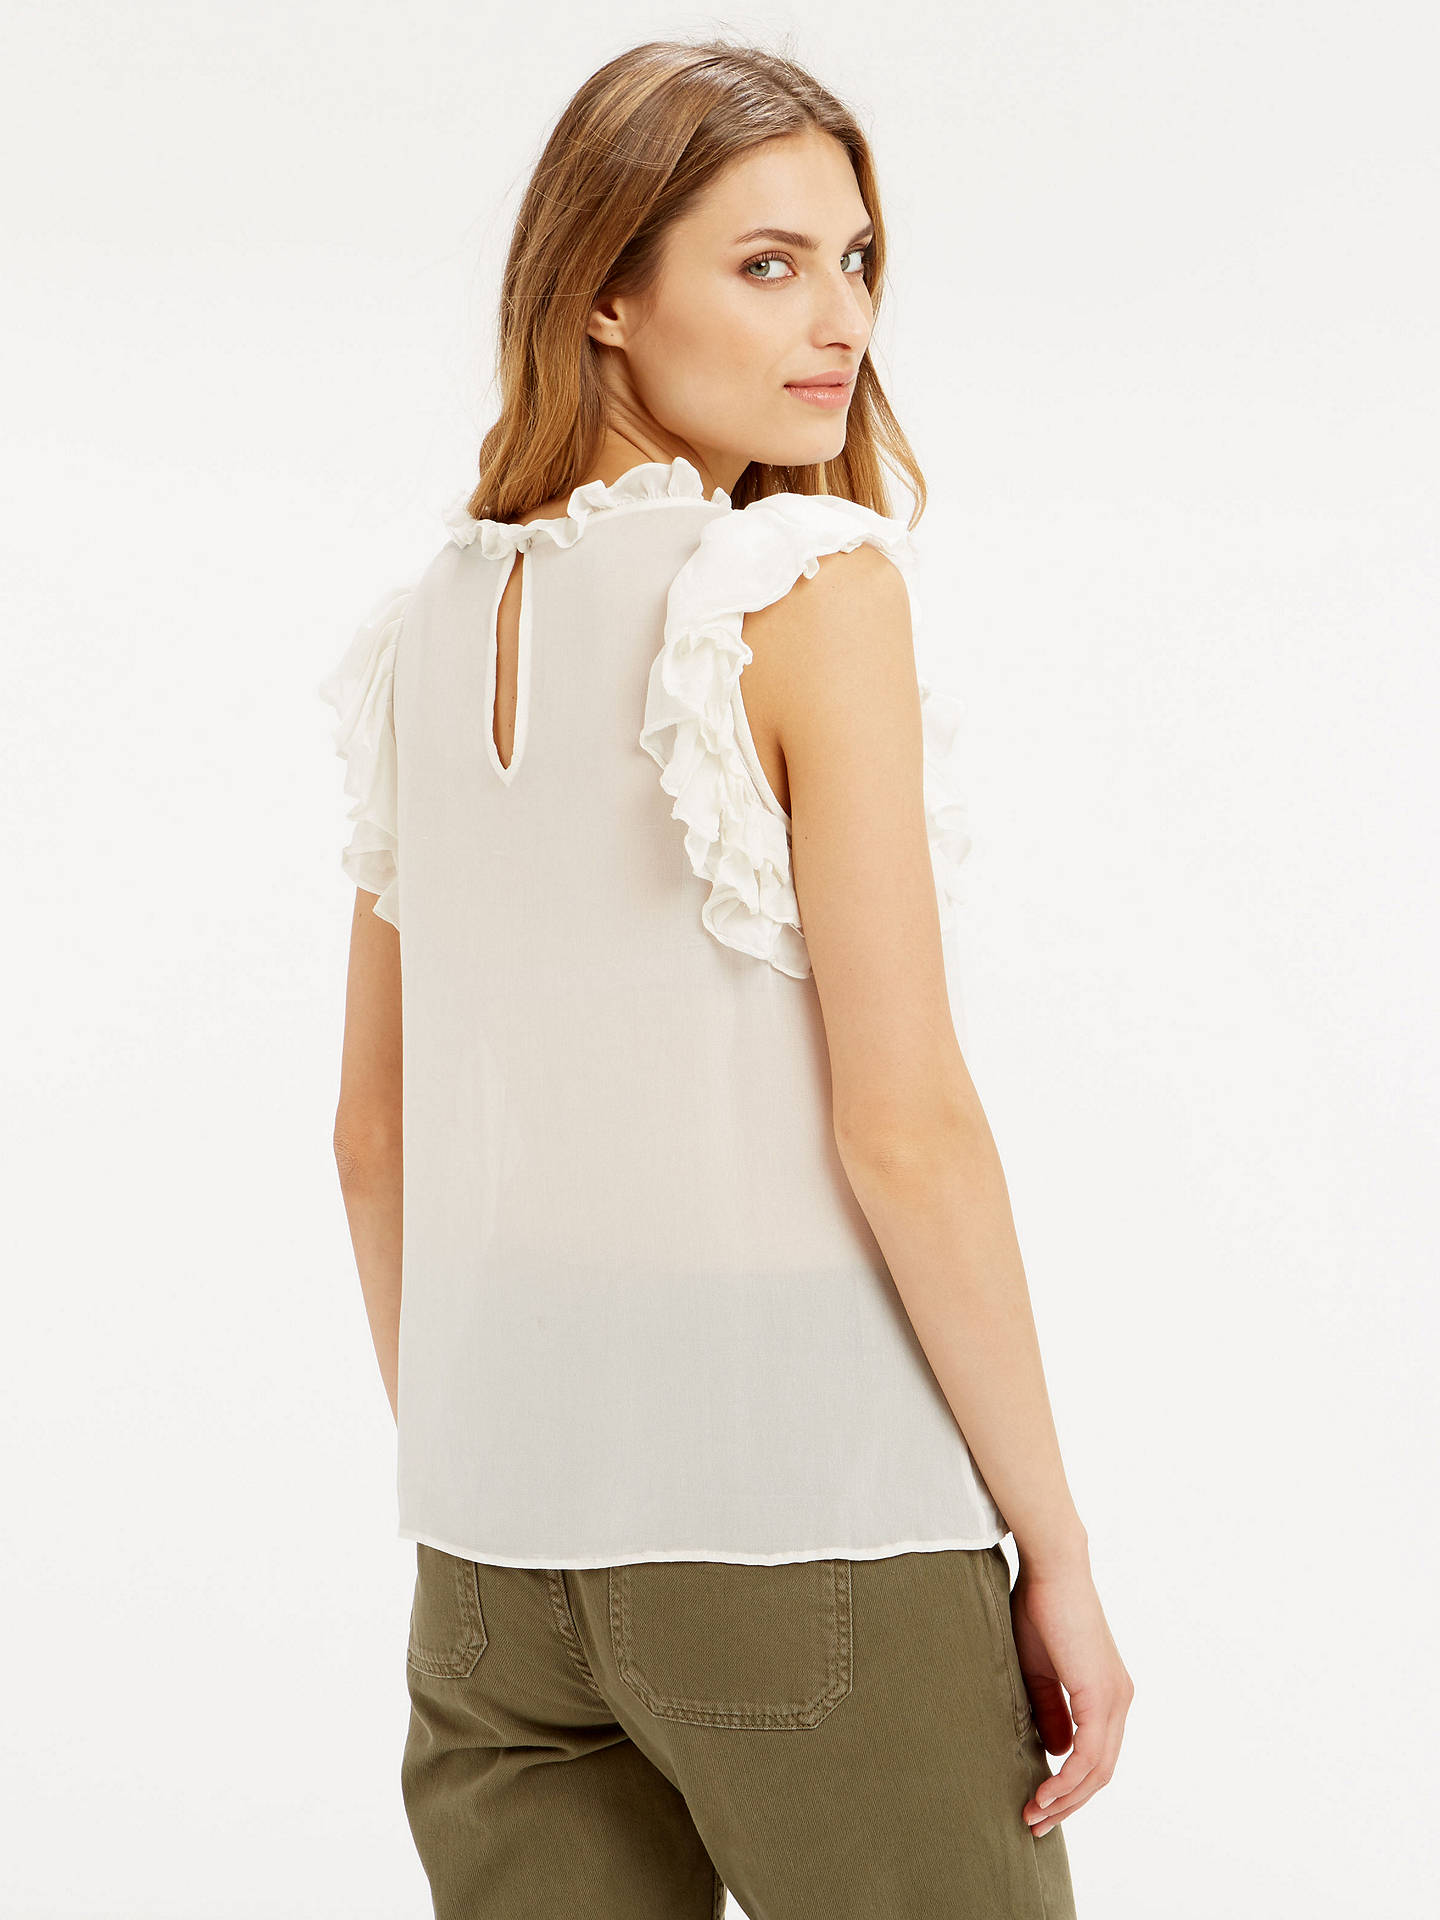 04cad590bc8d55 ... Buy Oasis Ruffle Sleeveless Shell Top, Off White, 8 Online at  johnlewis.com ...